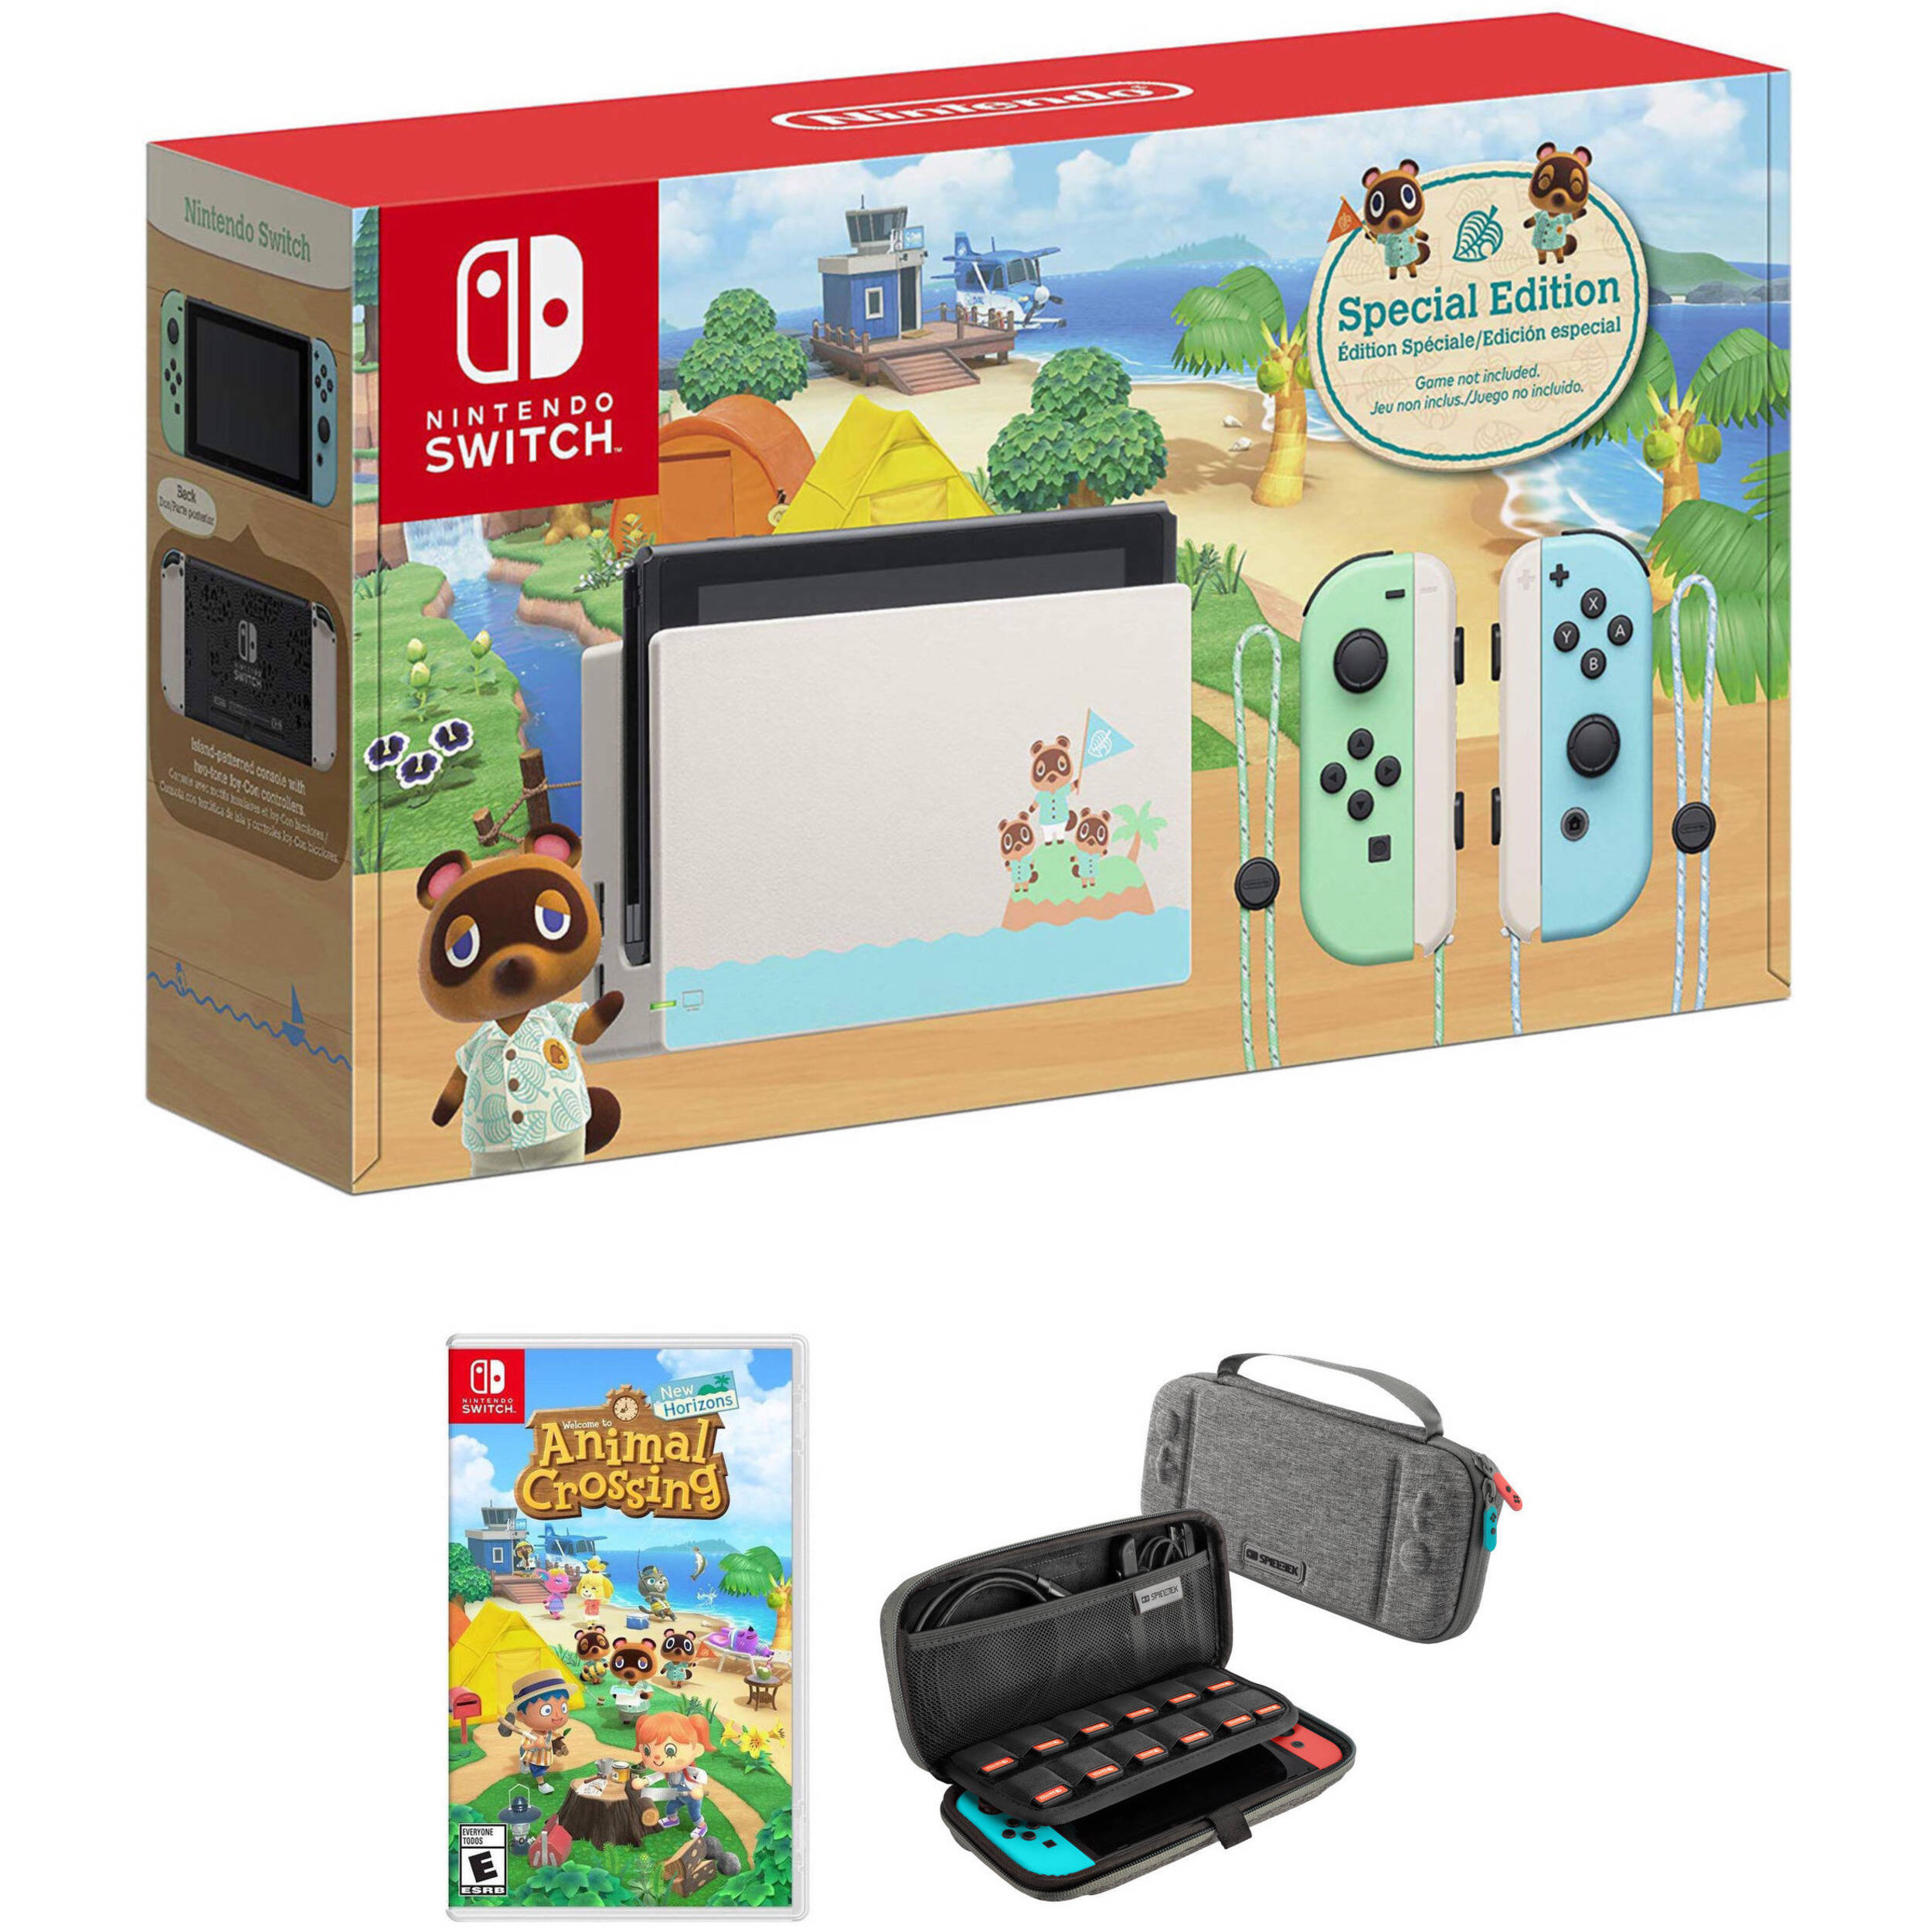 Nintendo Switch Animal Crossing New Horizons Edition Kit B H